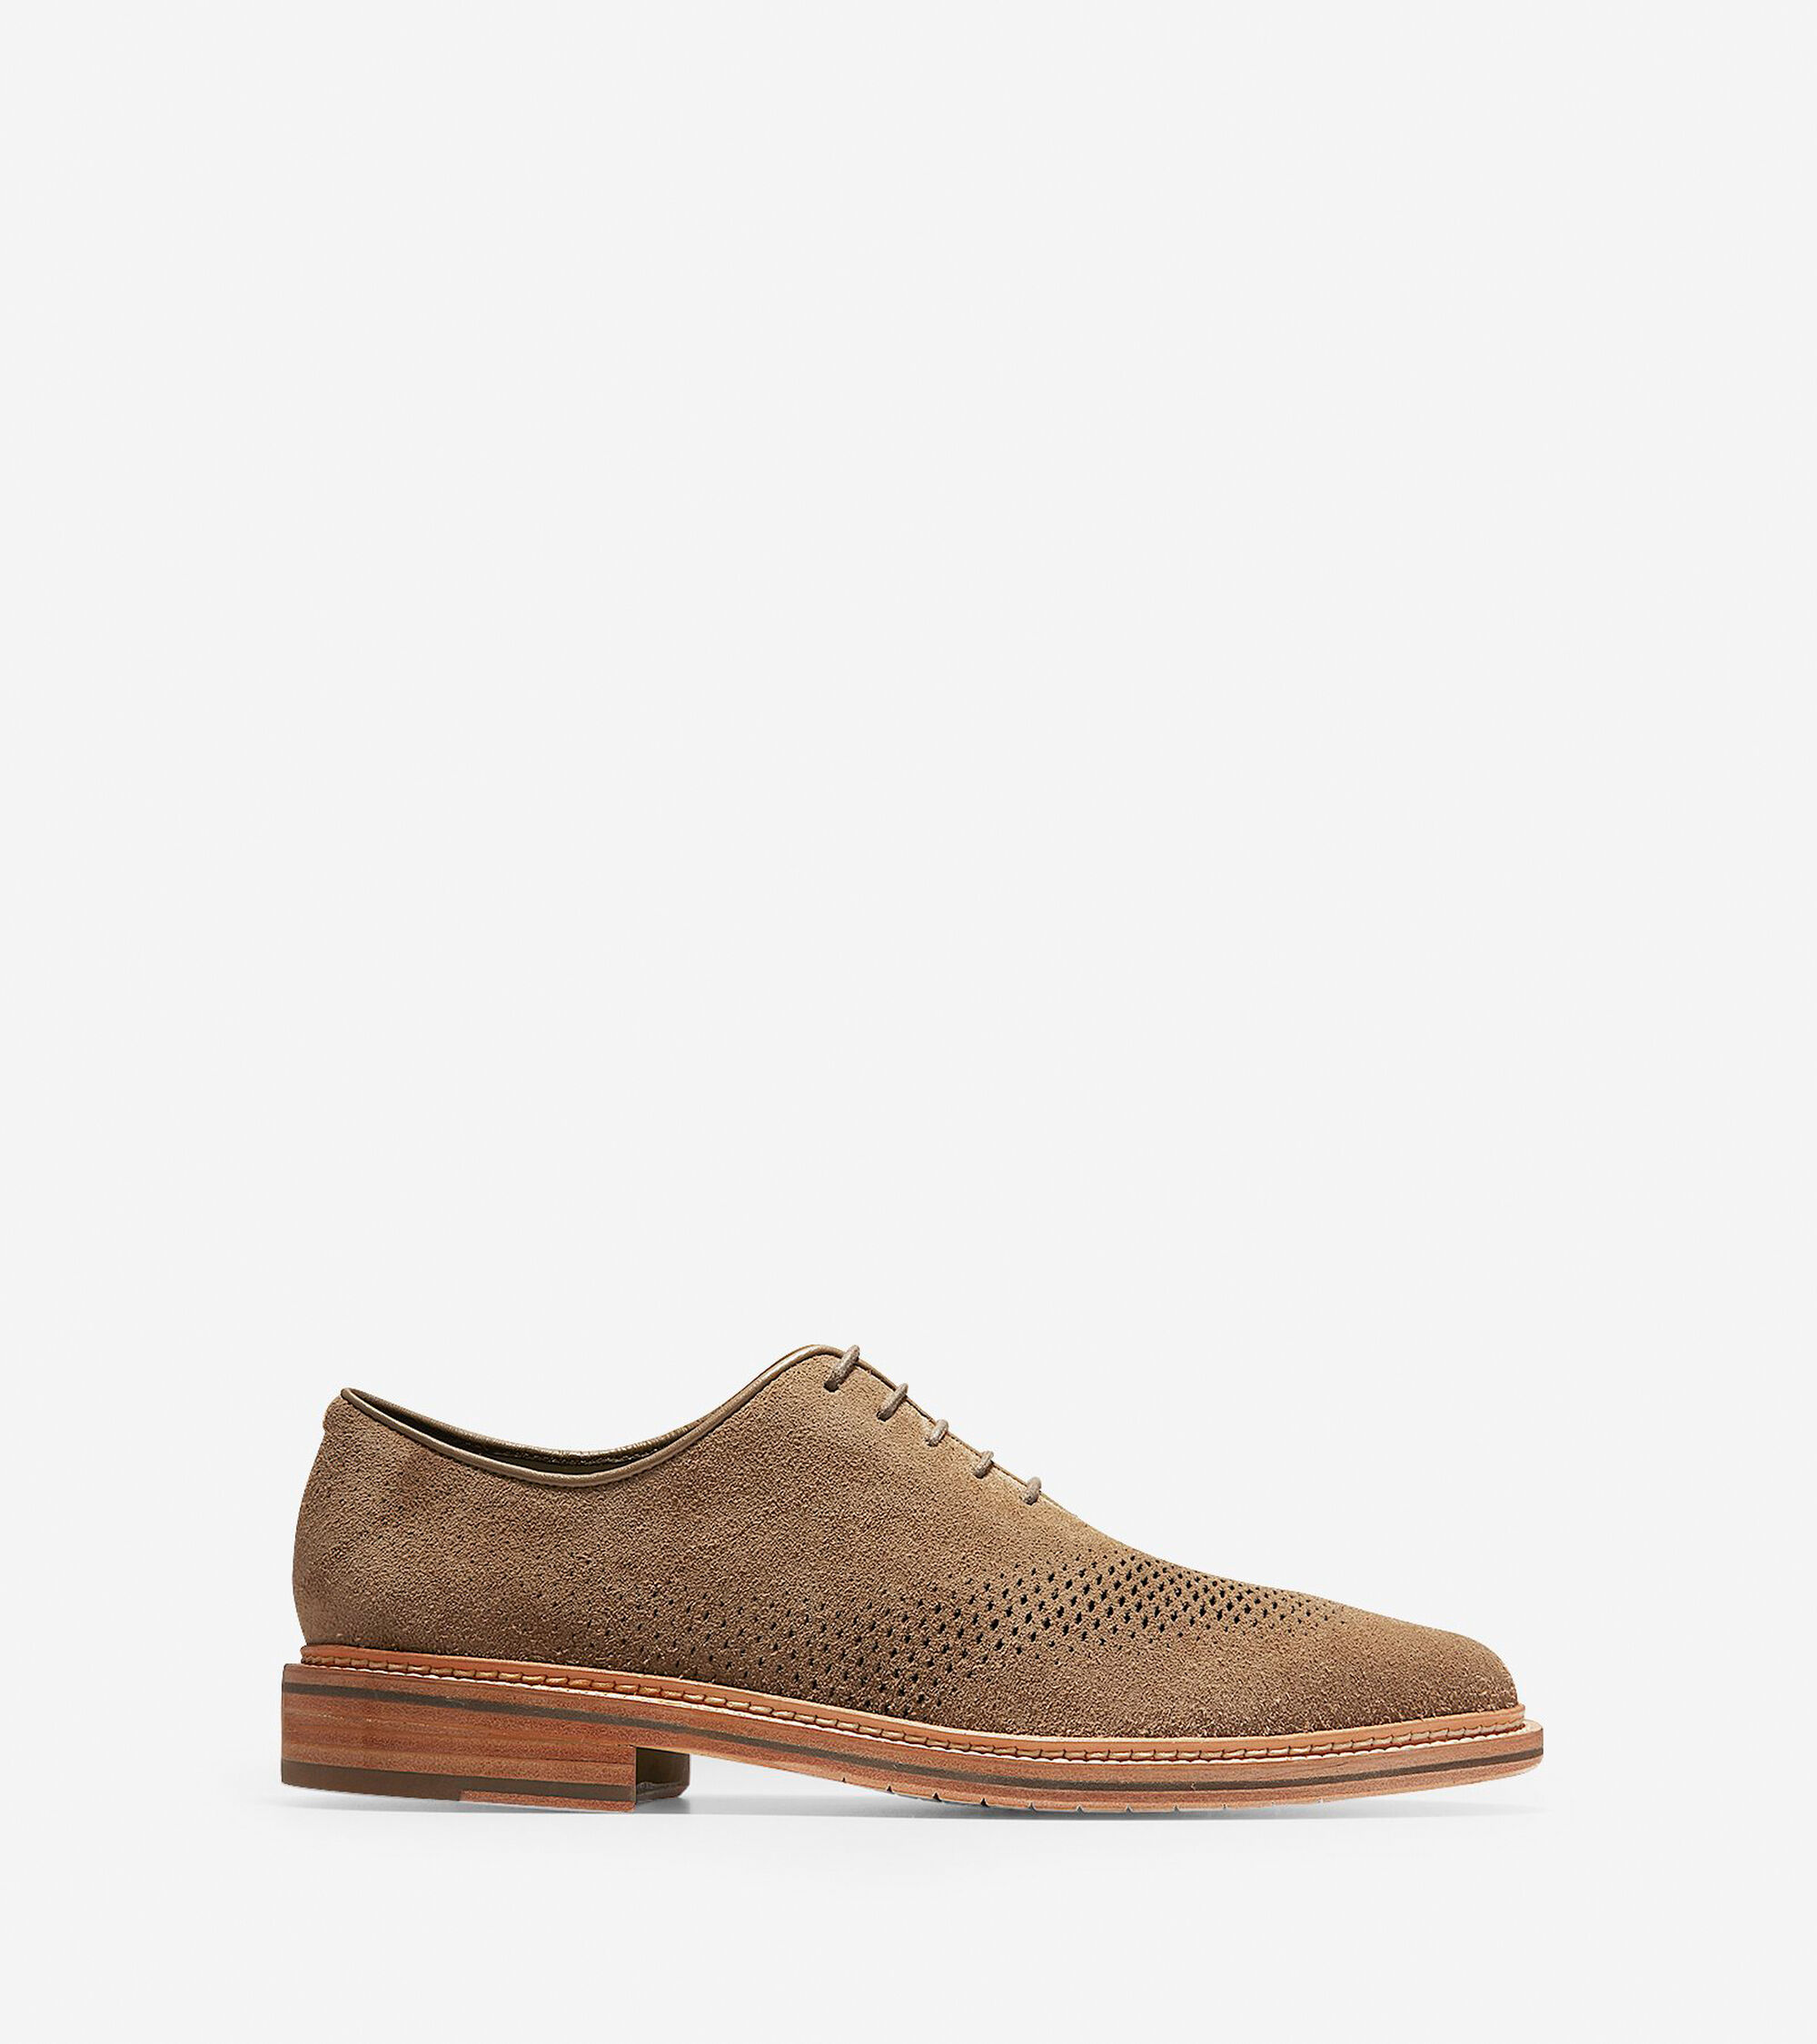 Cole Haan Men's Washington Grand Unlined Laser Wingtip Oxford Shoes